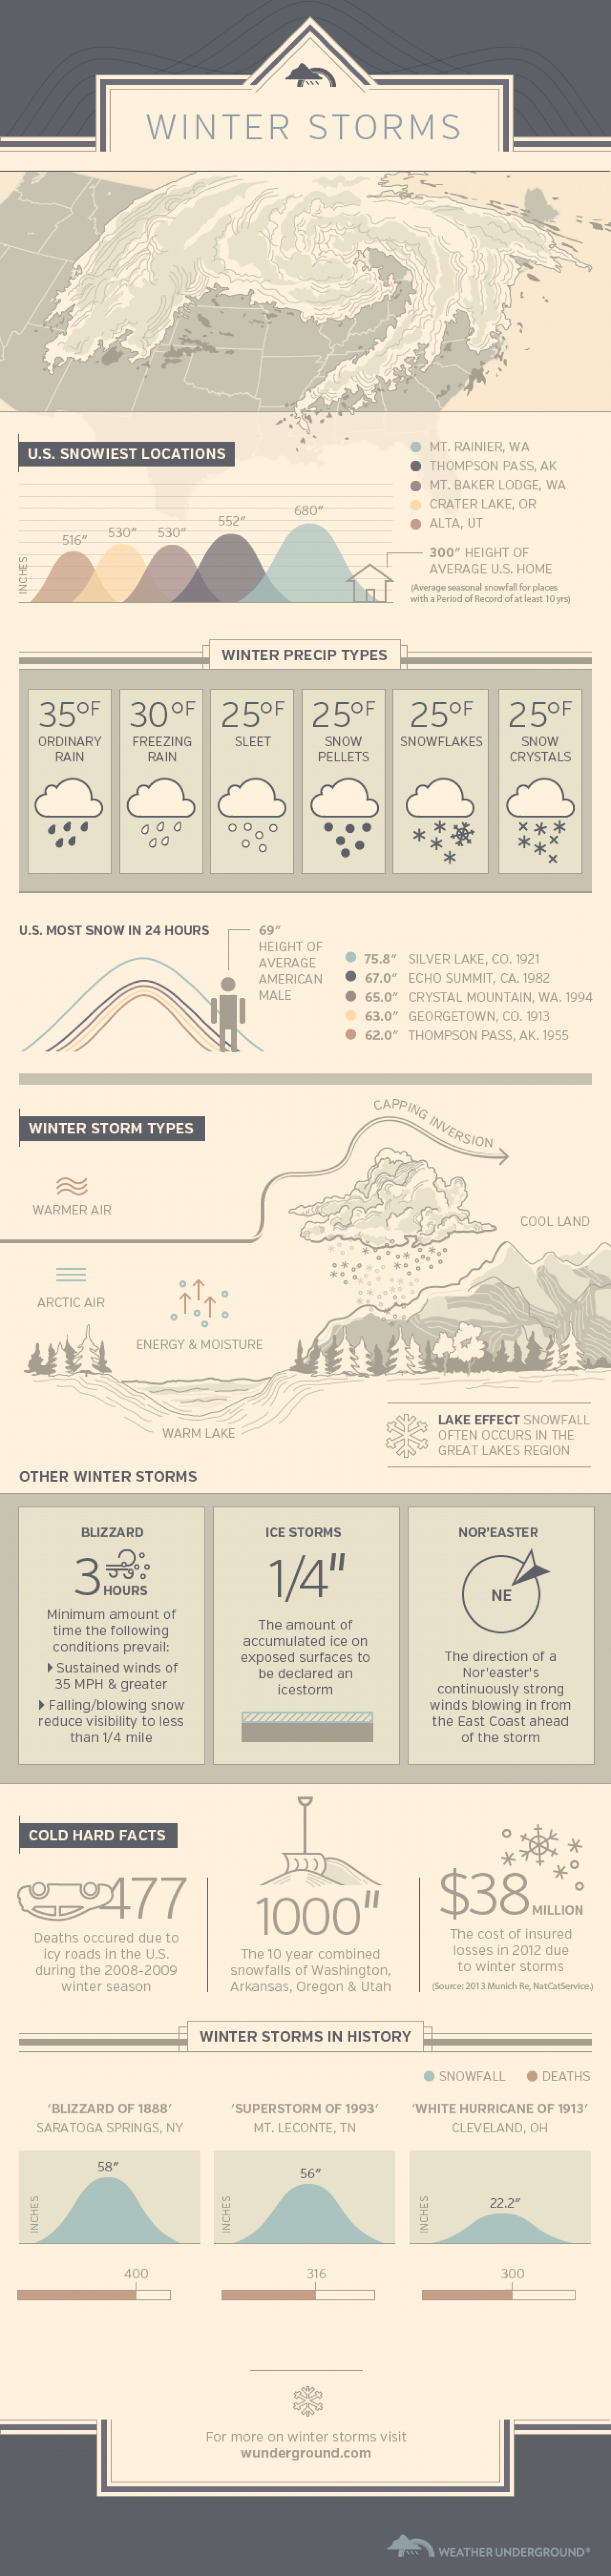 Winter Storms Infographic